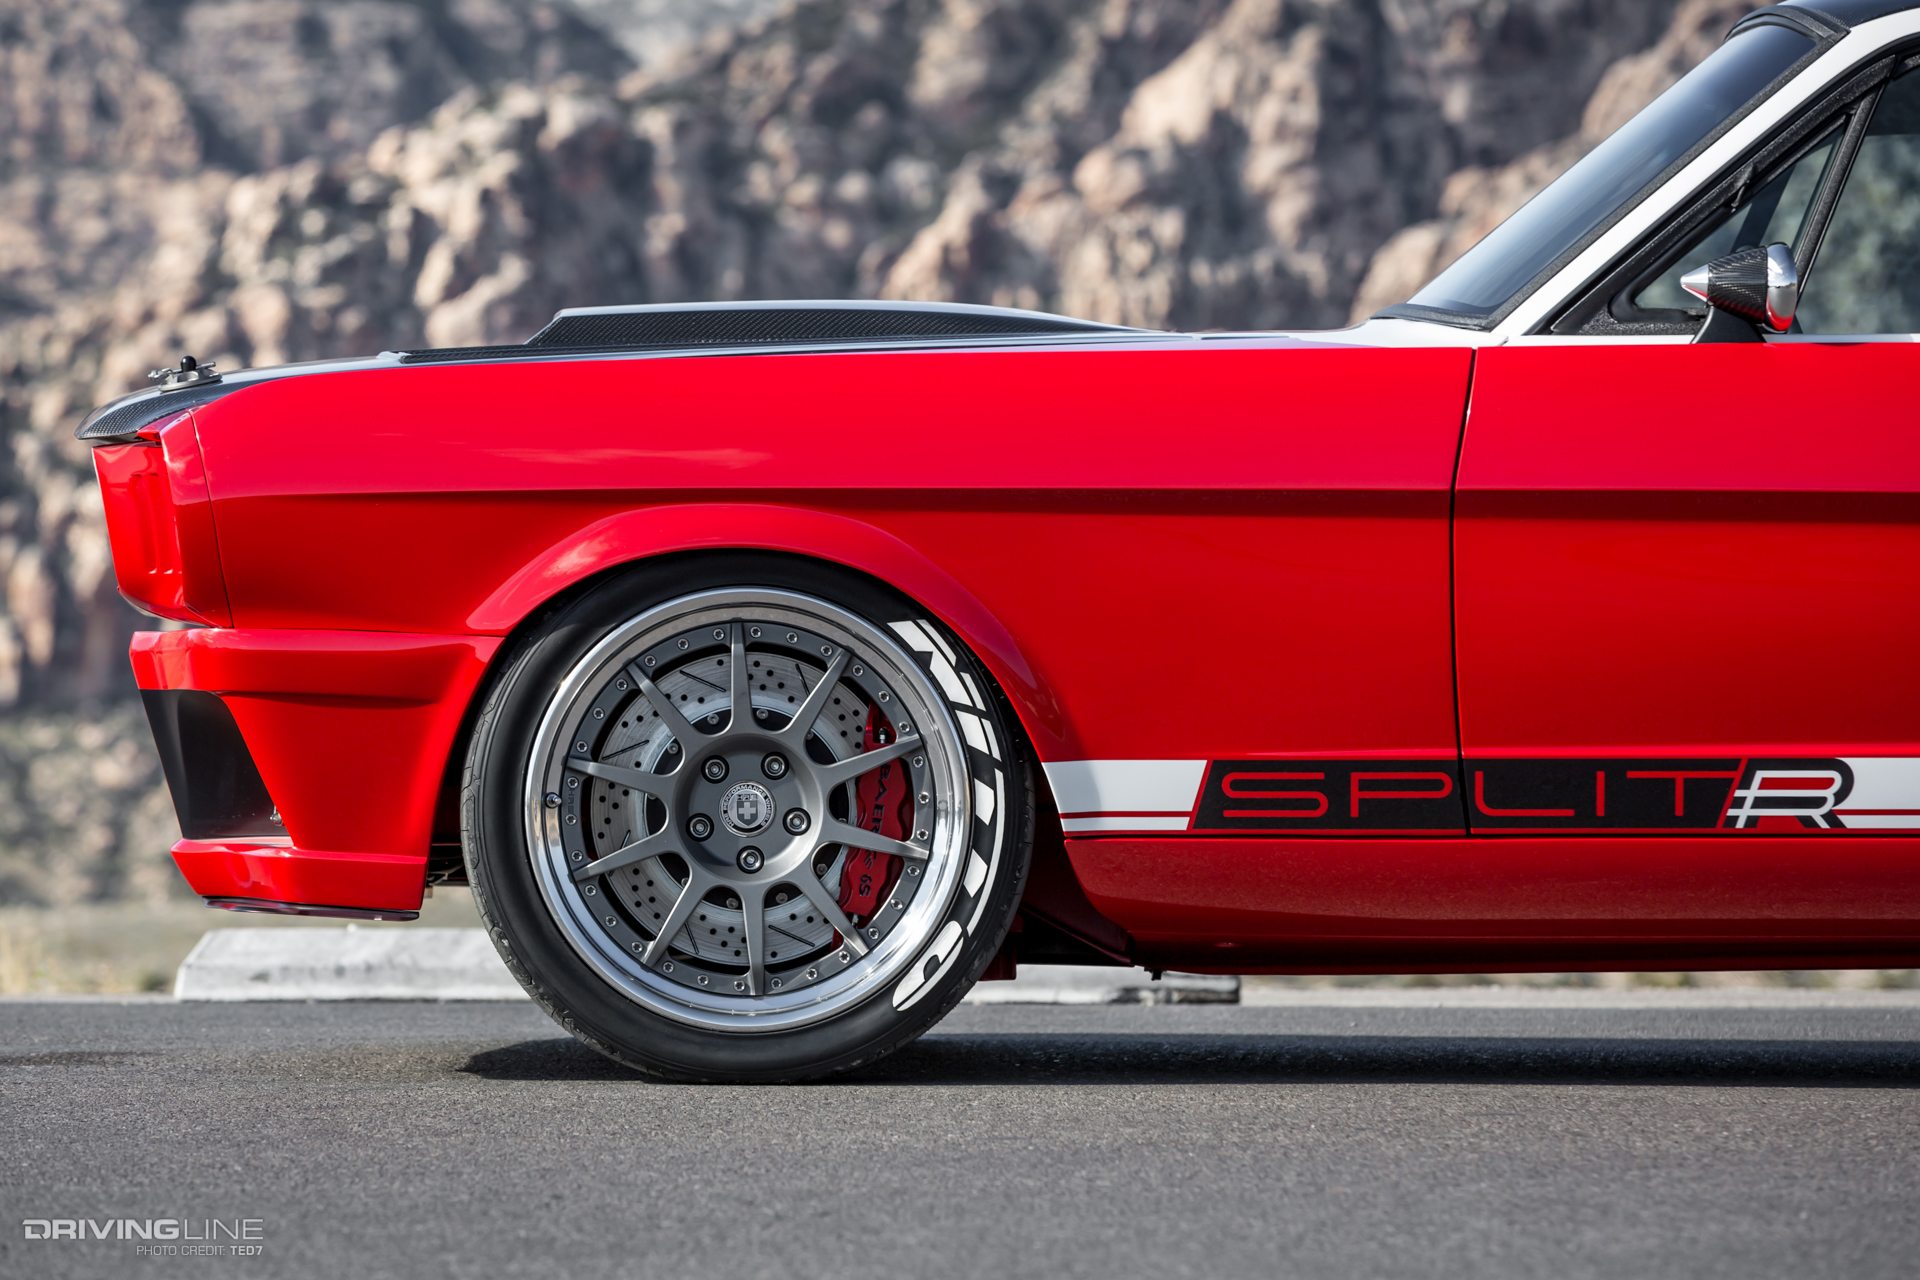 preview image & The Ringbrothersu0027 SPLITR Mustang Gives a Whole New Meaning to ... markmcfarlin.com